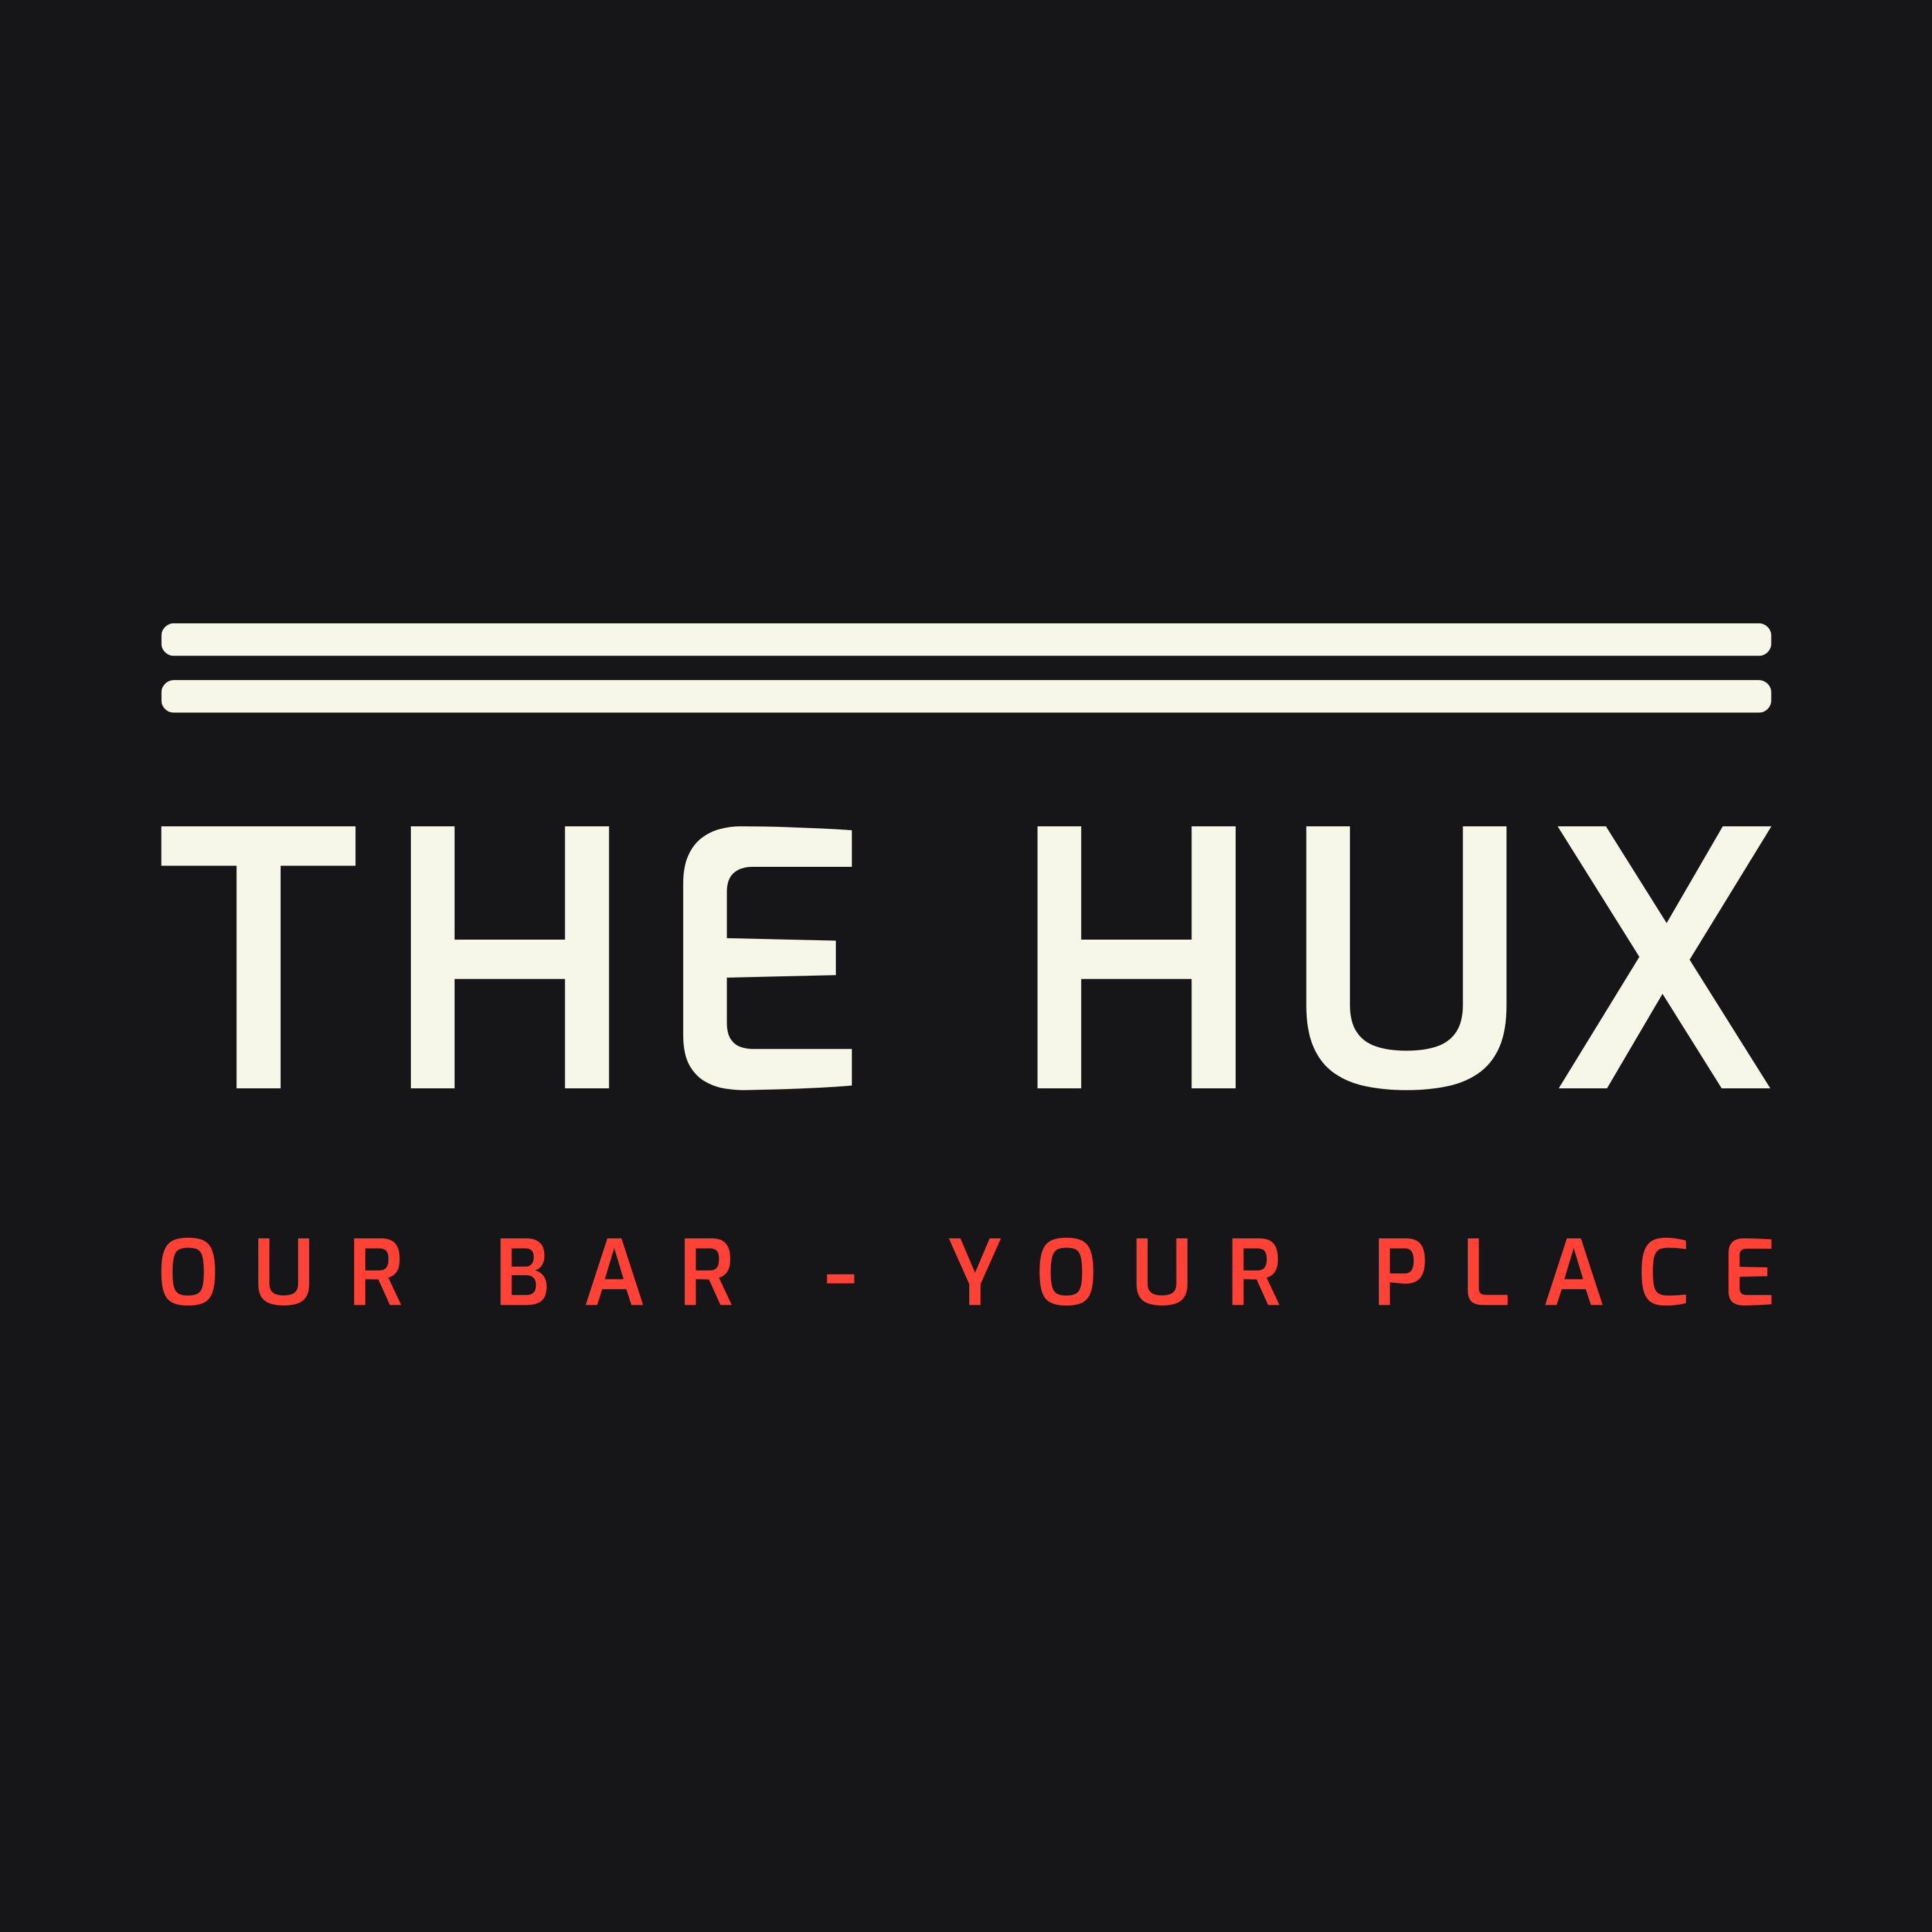 THE HUX